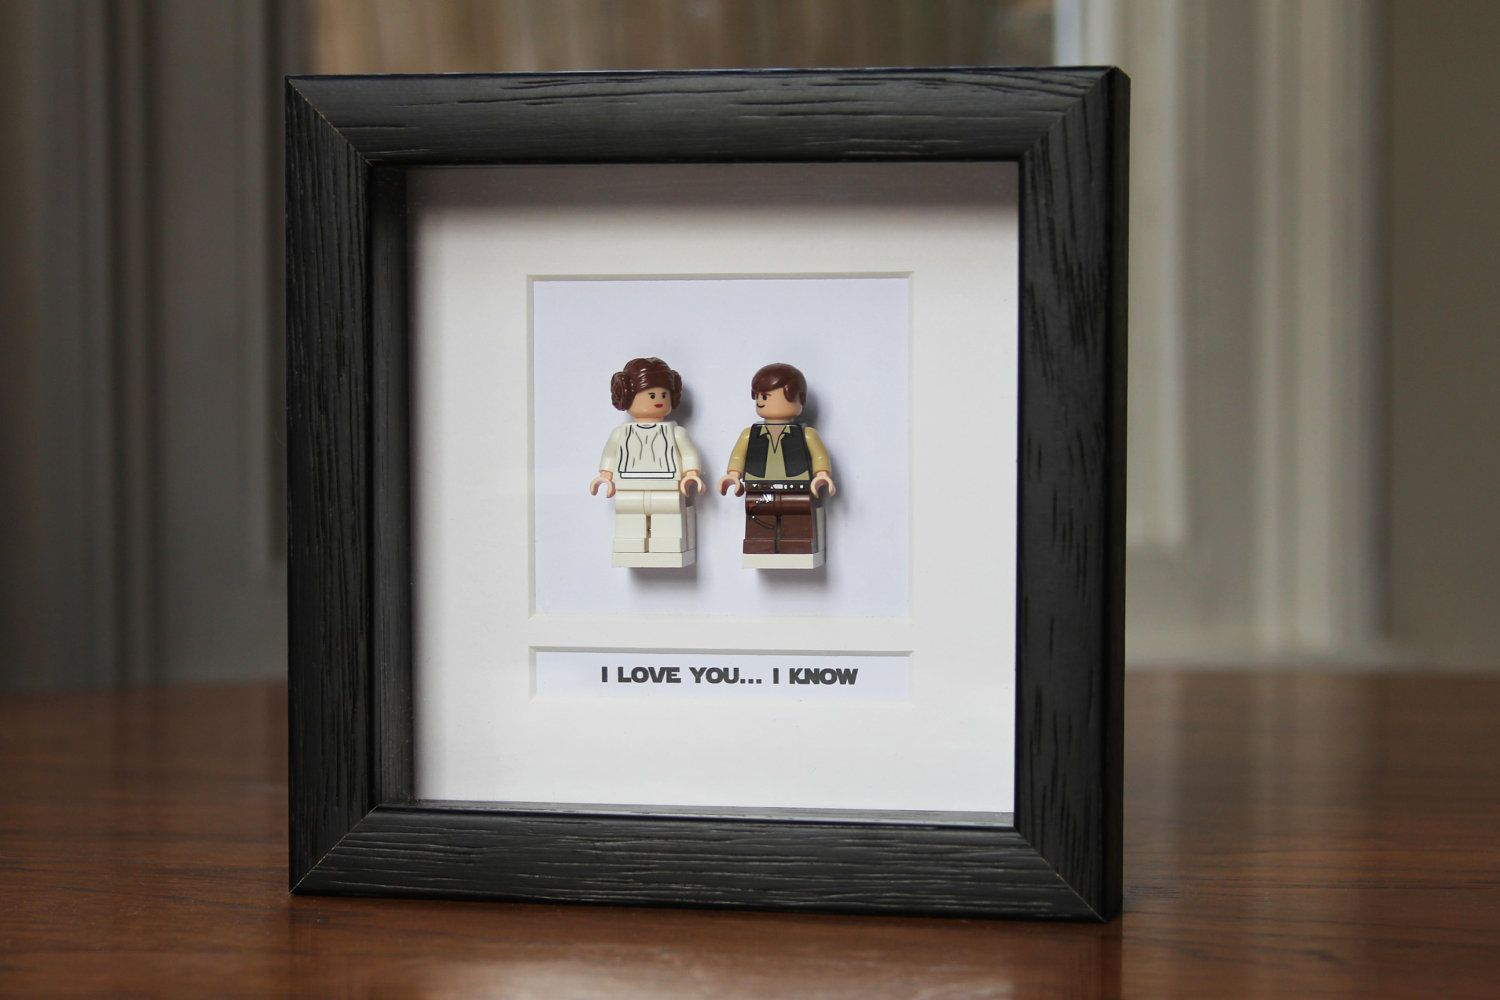 i love you i know han solo | Star Wars Lego Mini Figures ...